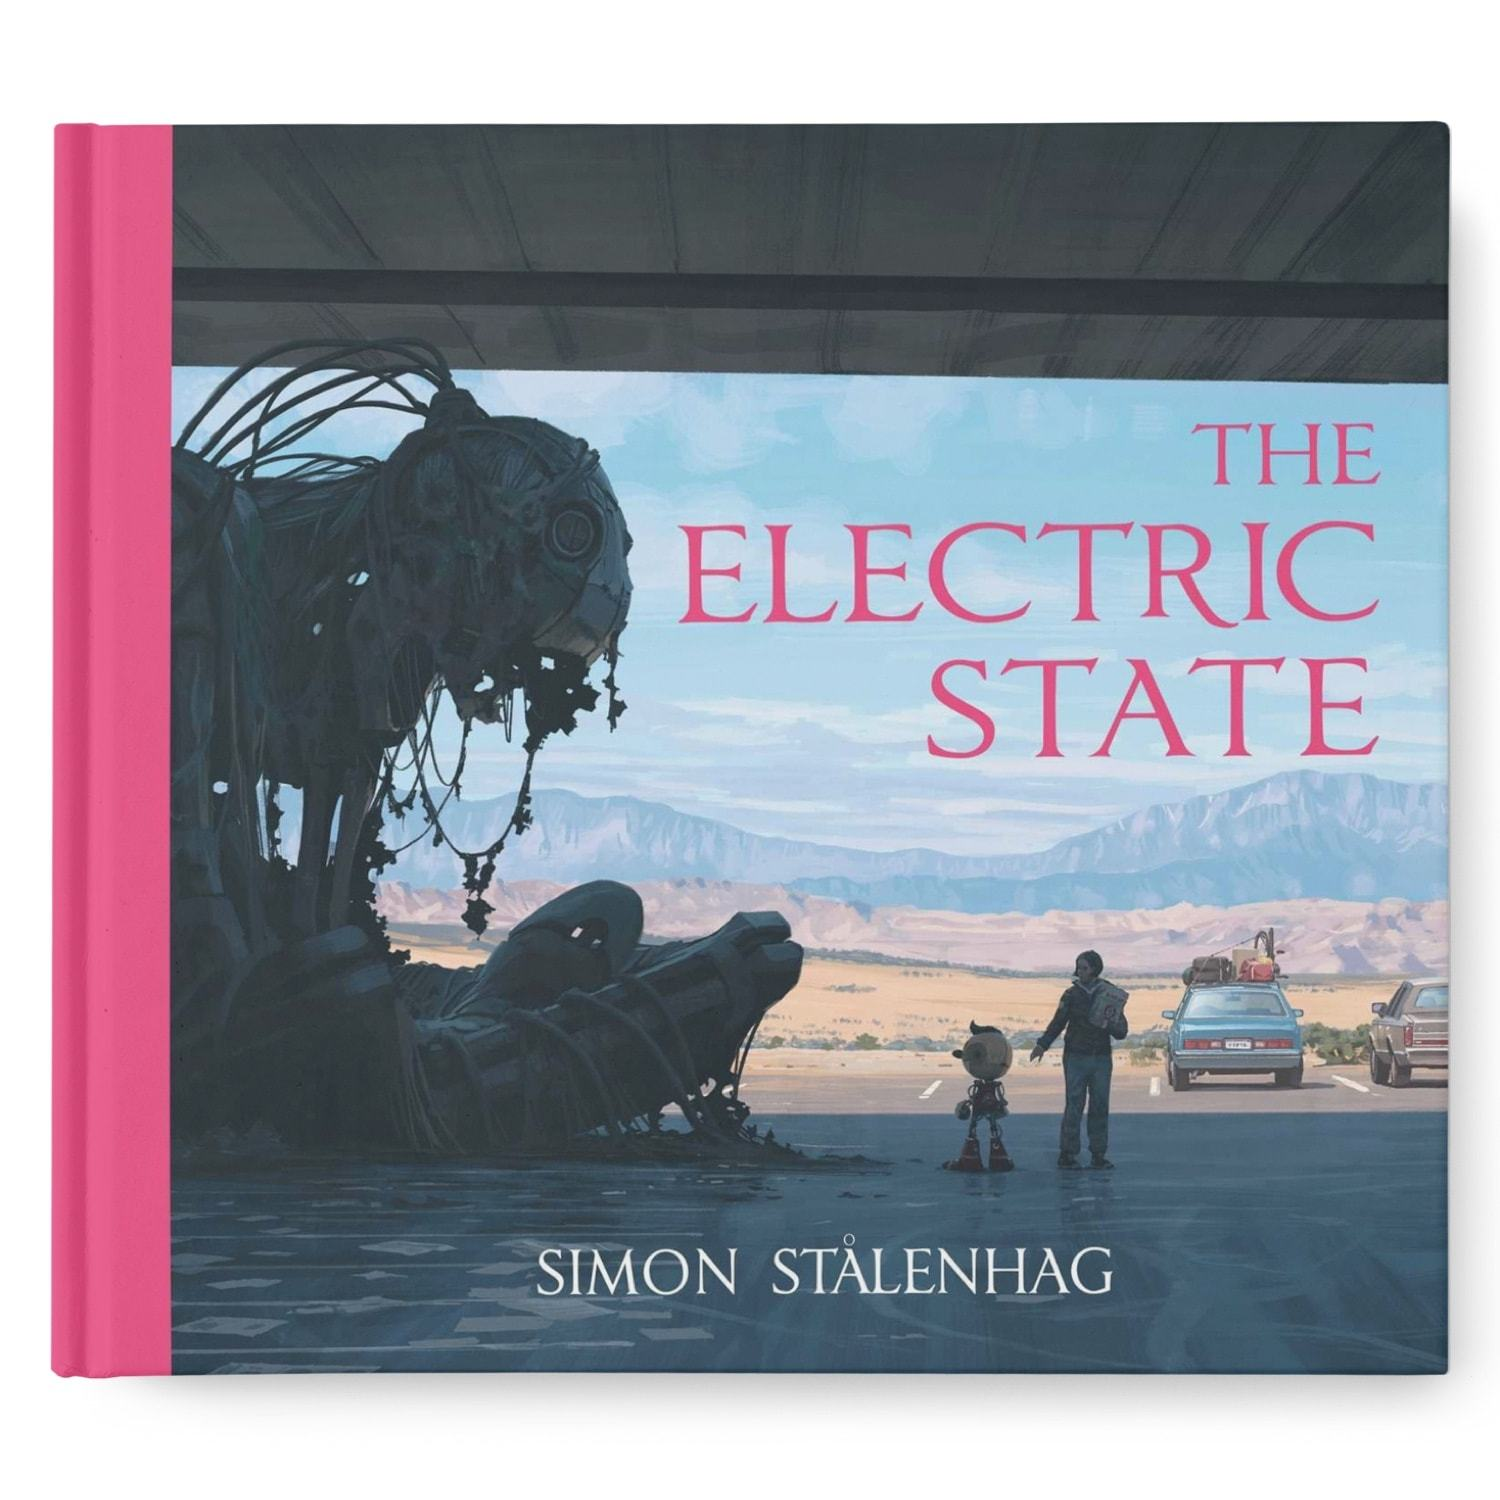 http://www.pastemagazine.com/articles/electricstate.jpg